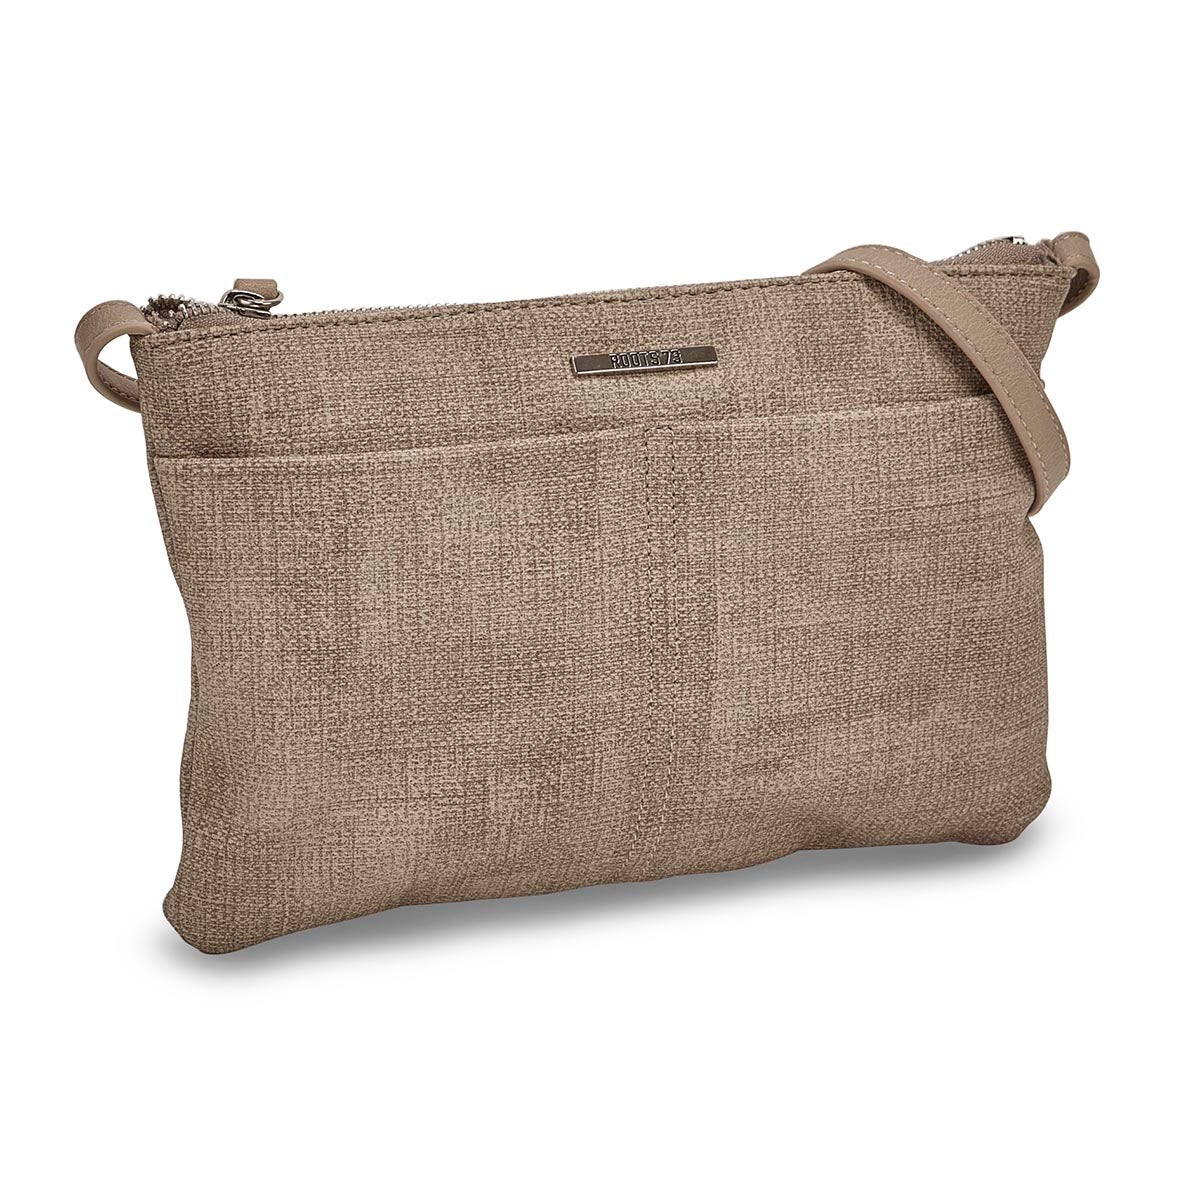 Women's R5216 EAST/WEST taupe cross body bag